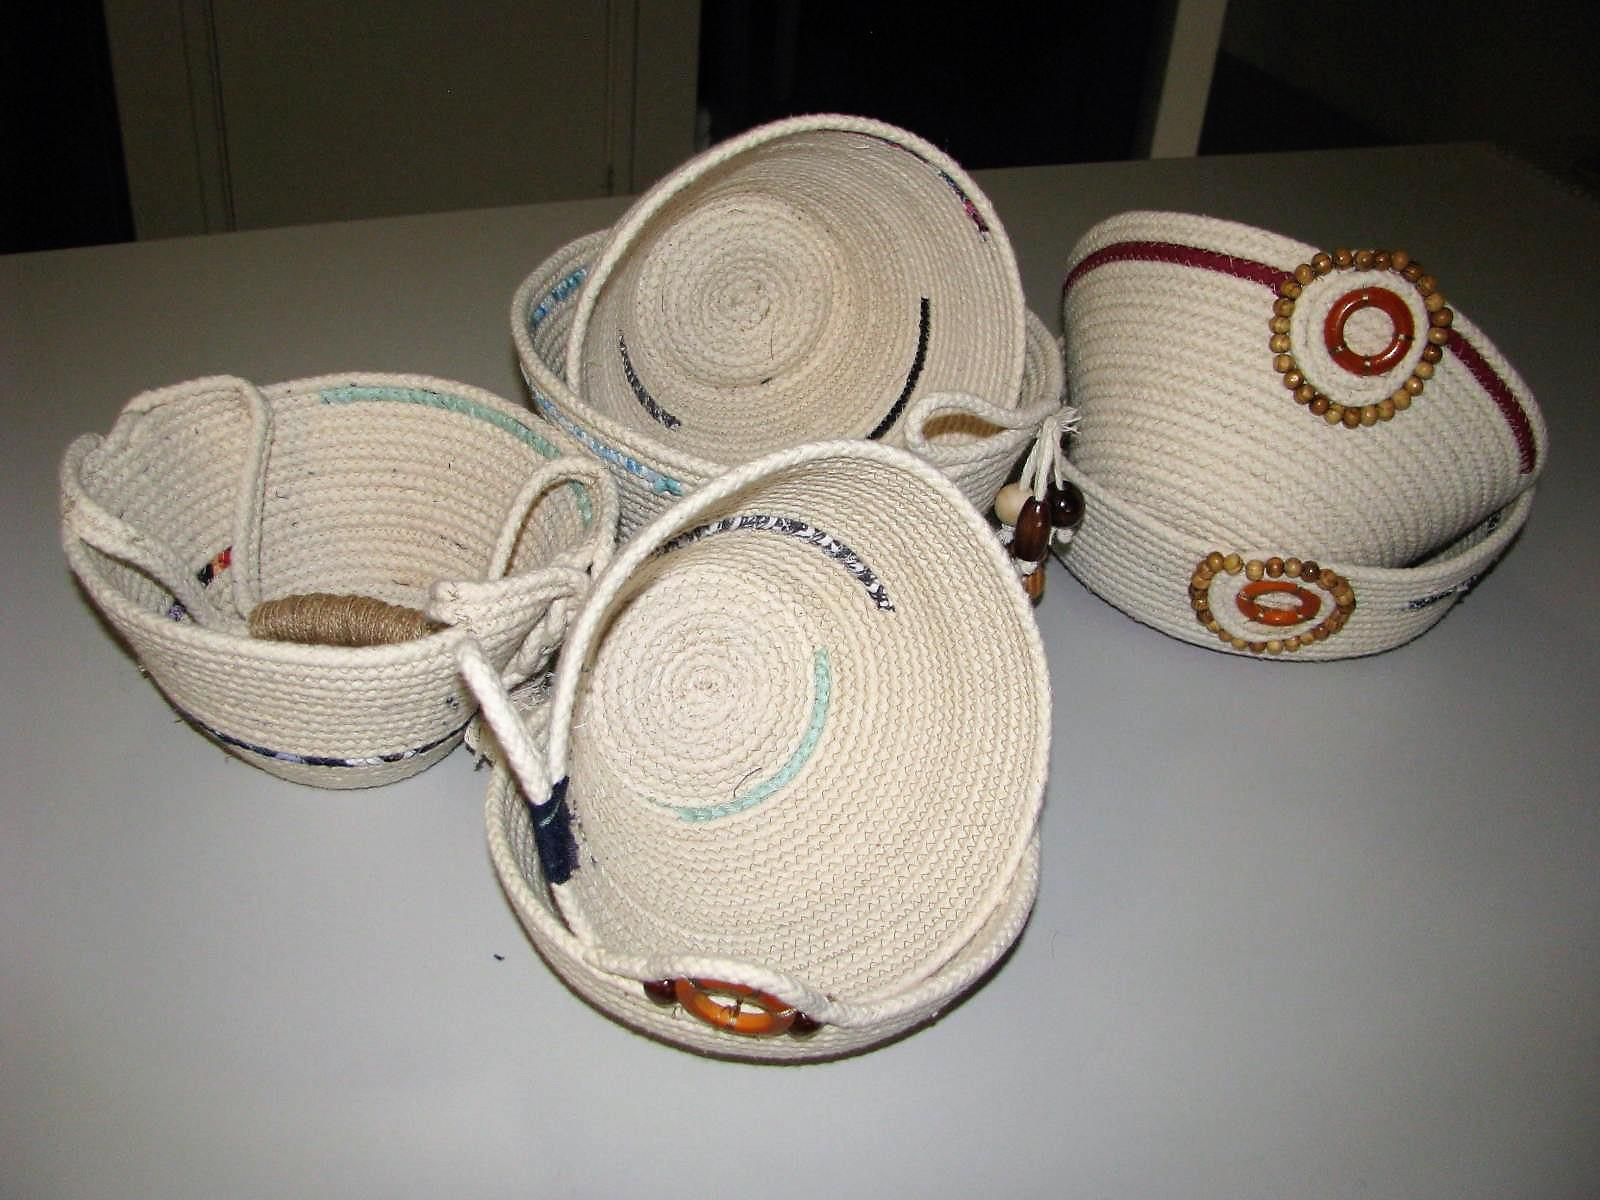 Rope baskets, using beads as a finish